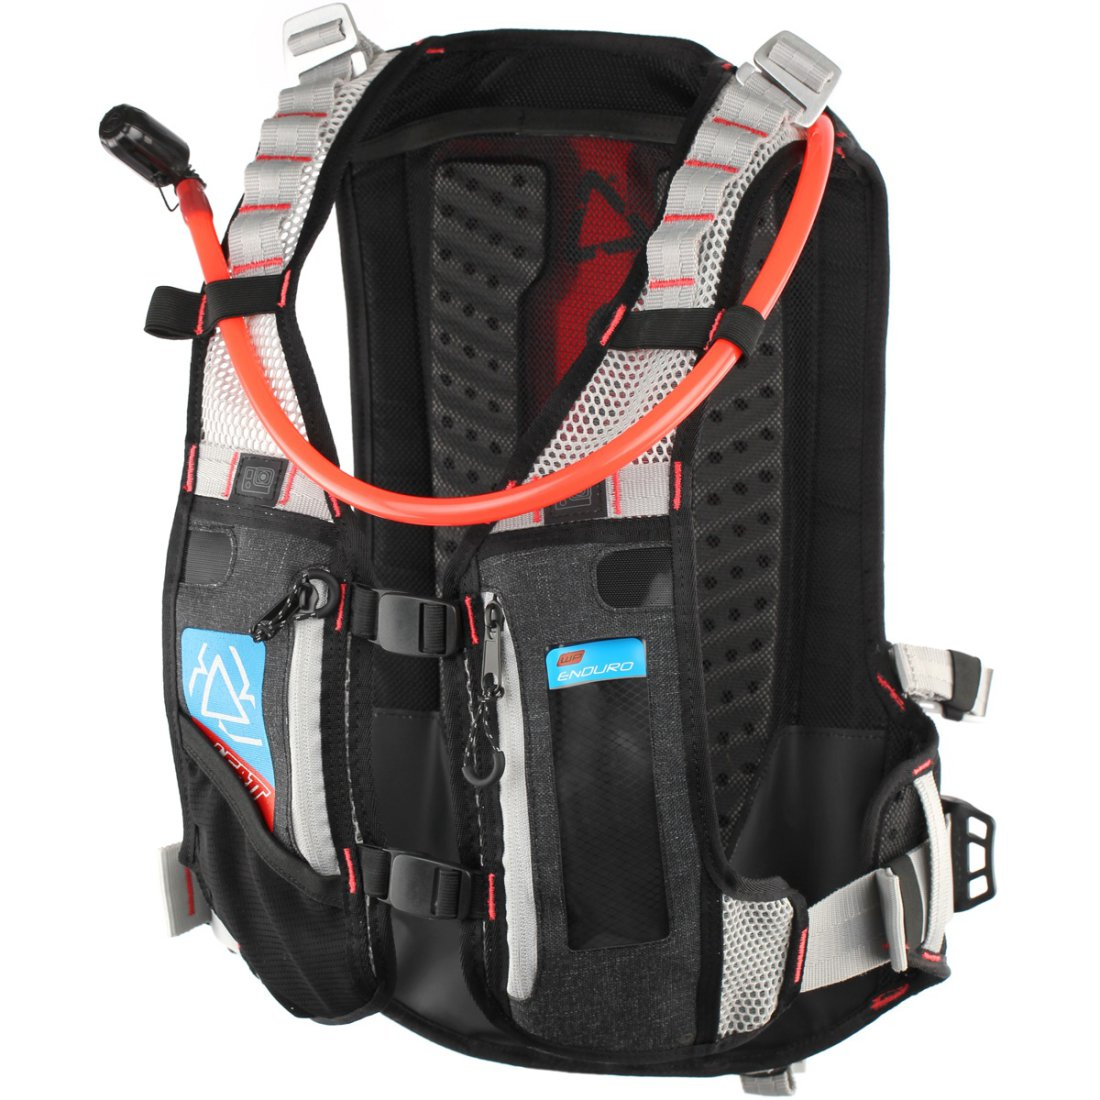 Sac LEATT Hydration Pack DBX Enduro Lite WP 2.0 UNICA d1Ebu